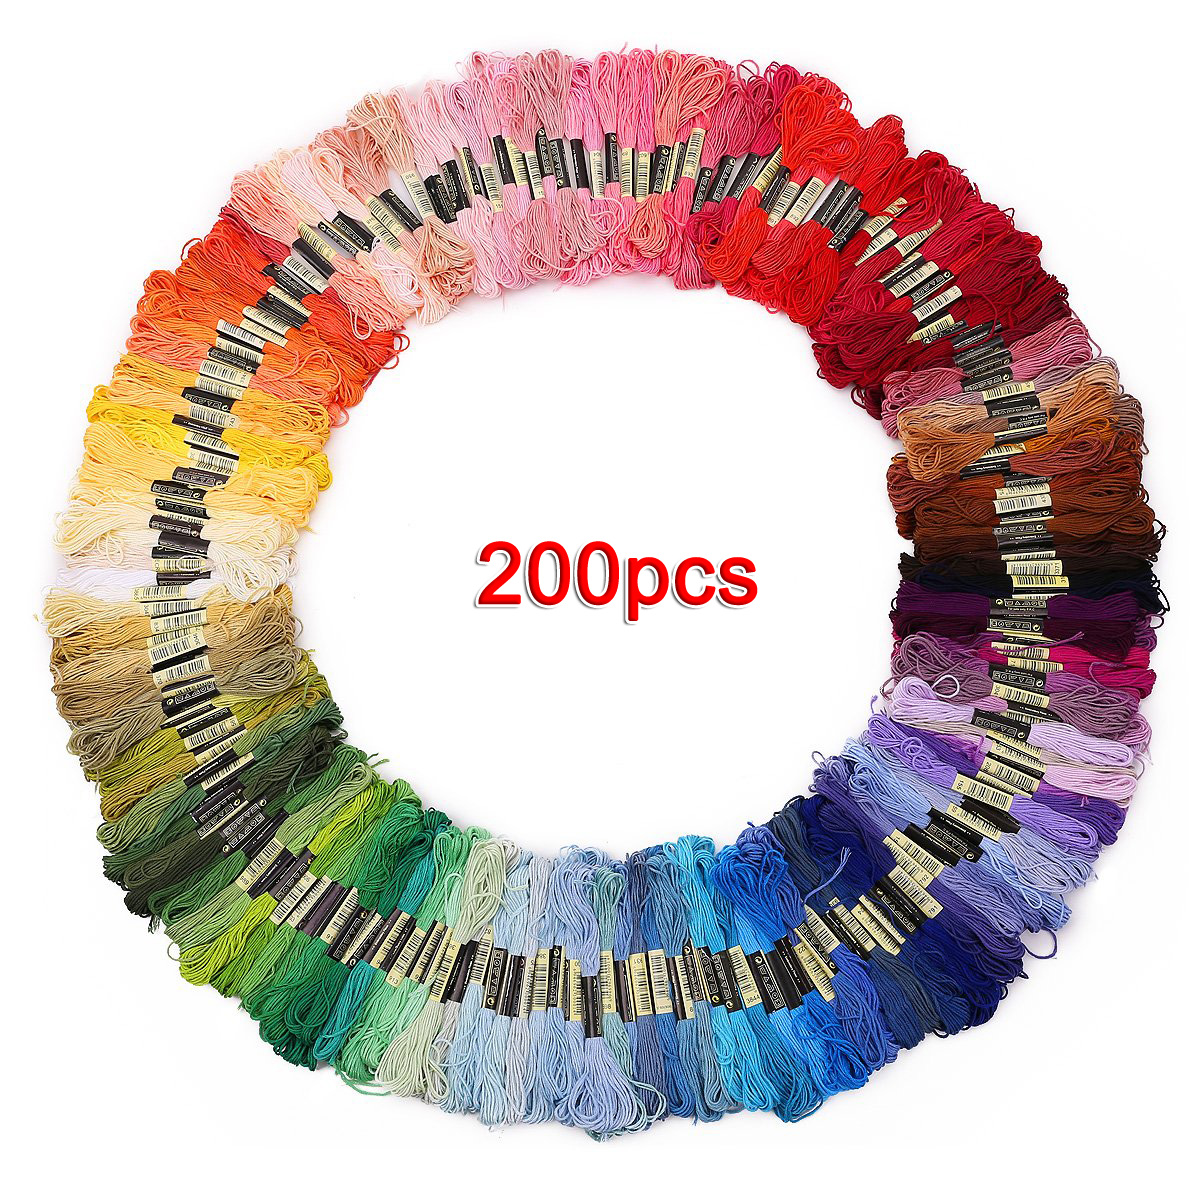 200 skeins of multicolored yarn for cross needle embroidery Crocheting200 skeins of multicolored yarn for cross needle embroidery Crocheting